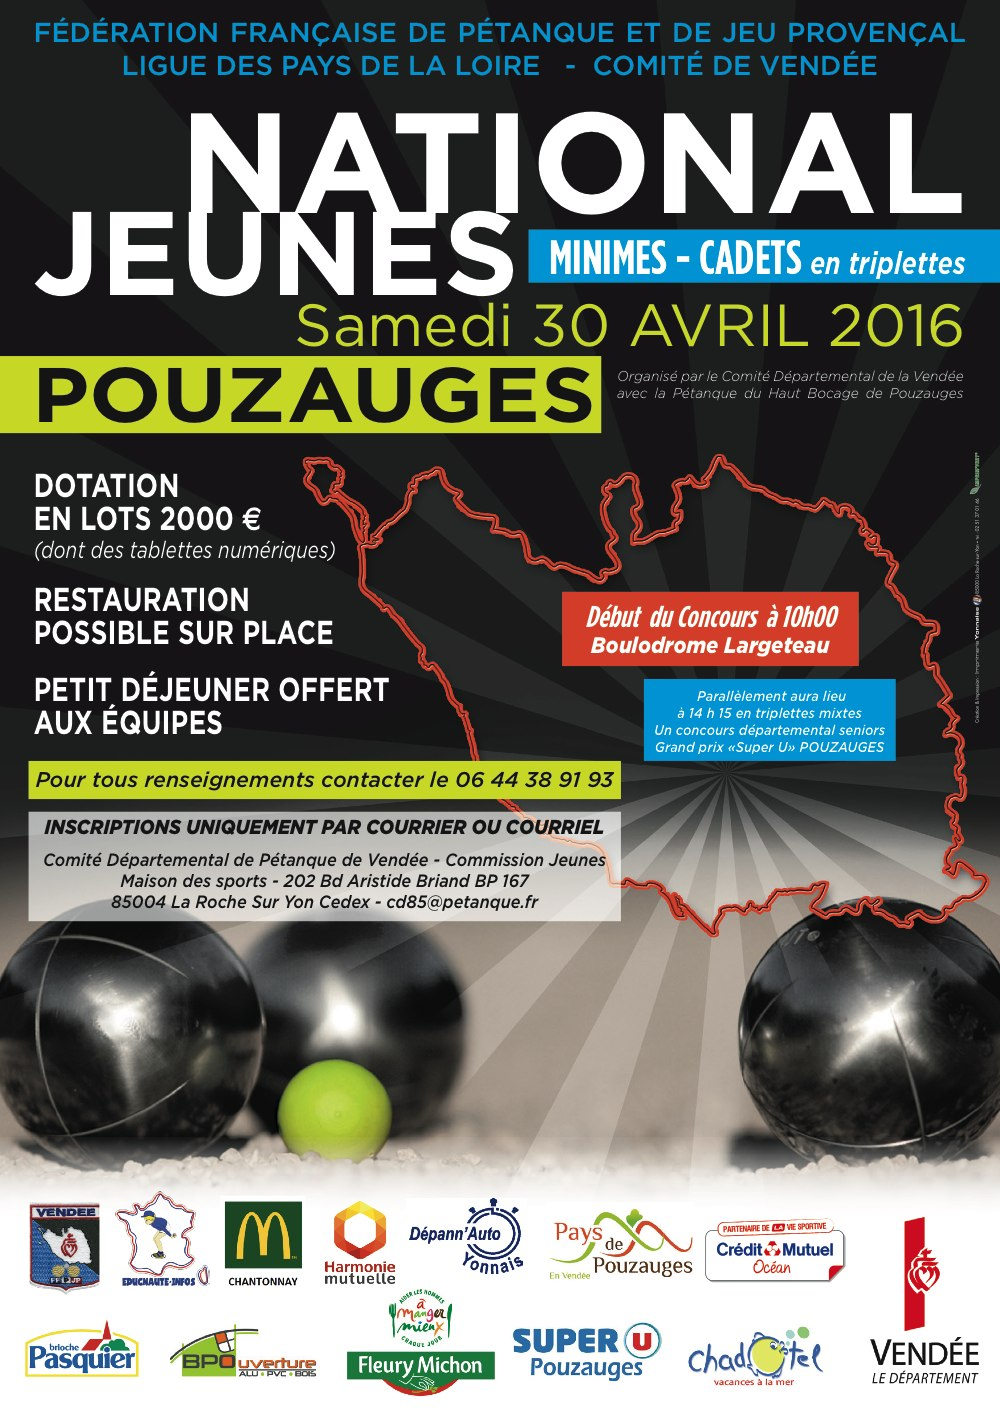 National Jeunes Pouzauges